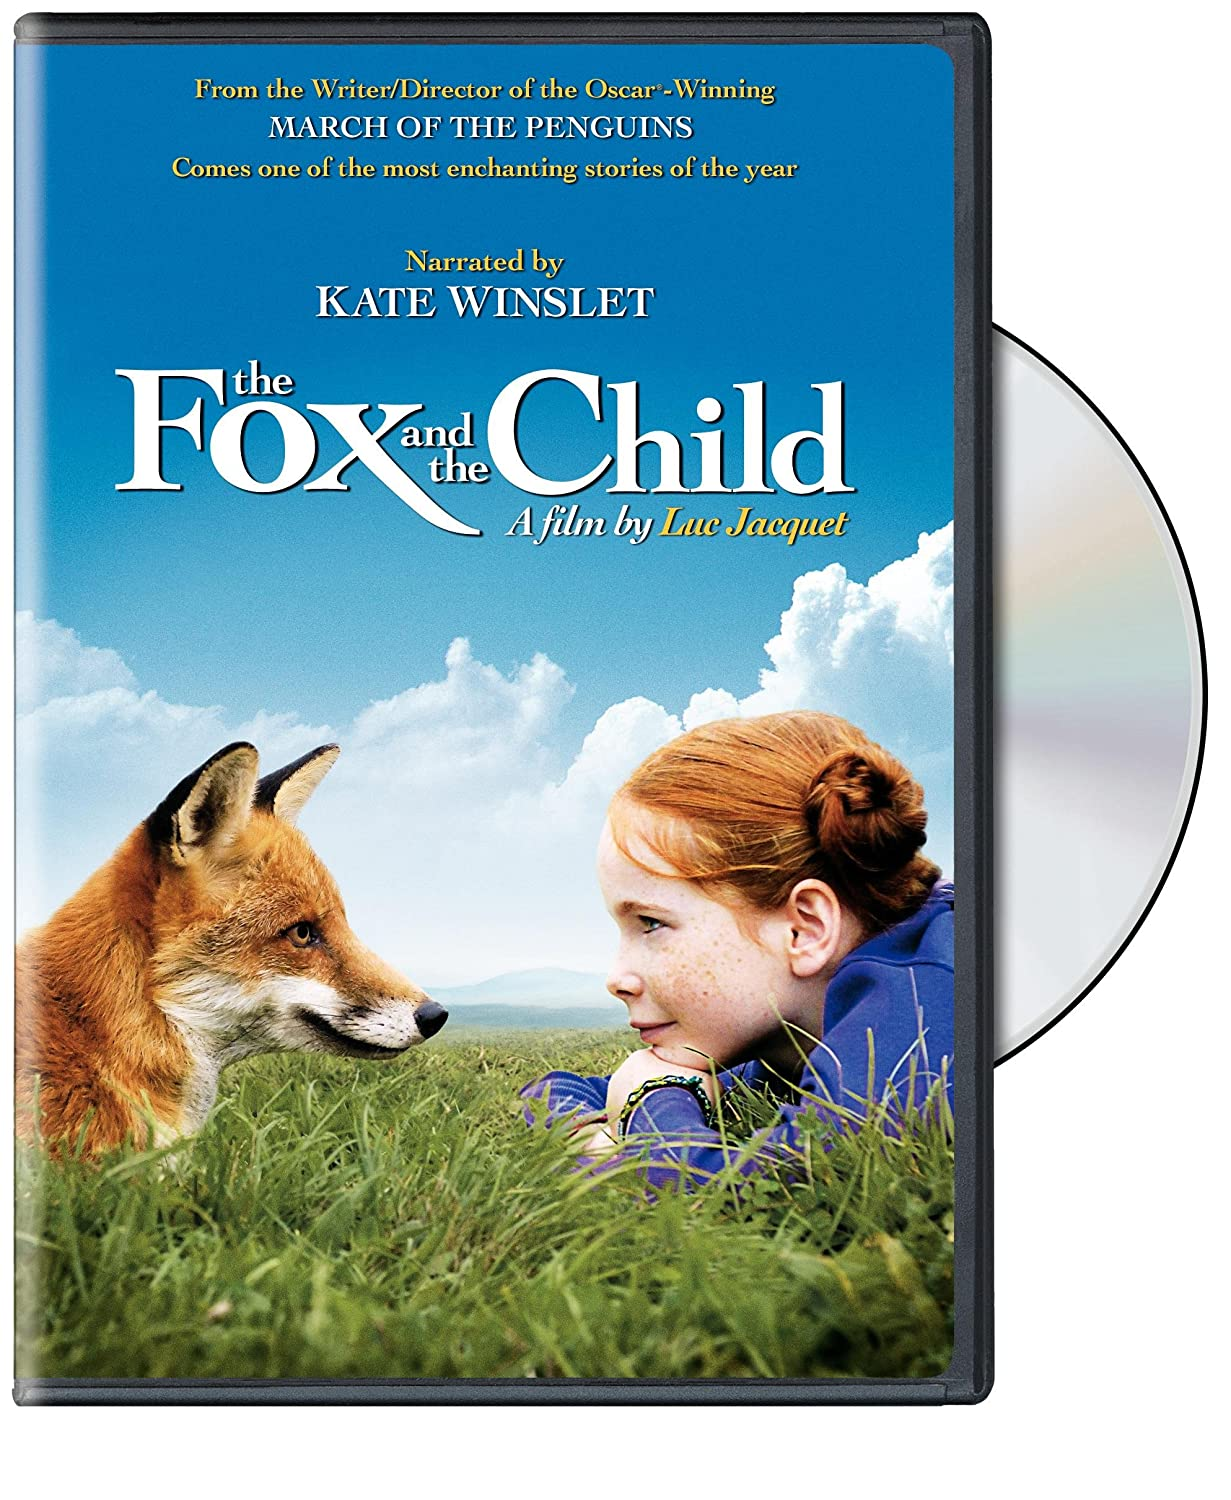 Amazon.com: The Fox and the Child: Ambra Angiolini, Bertille Noël ...